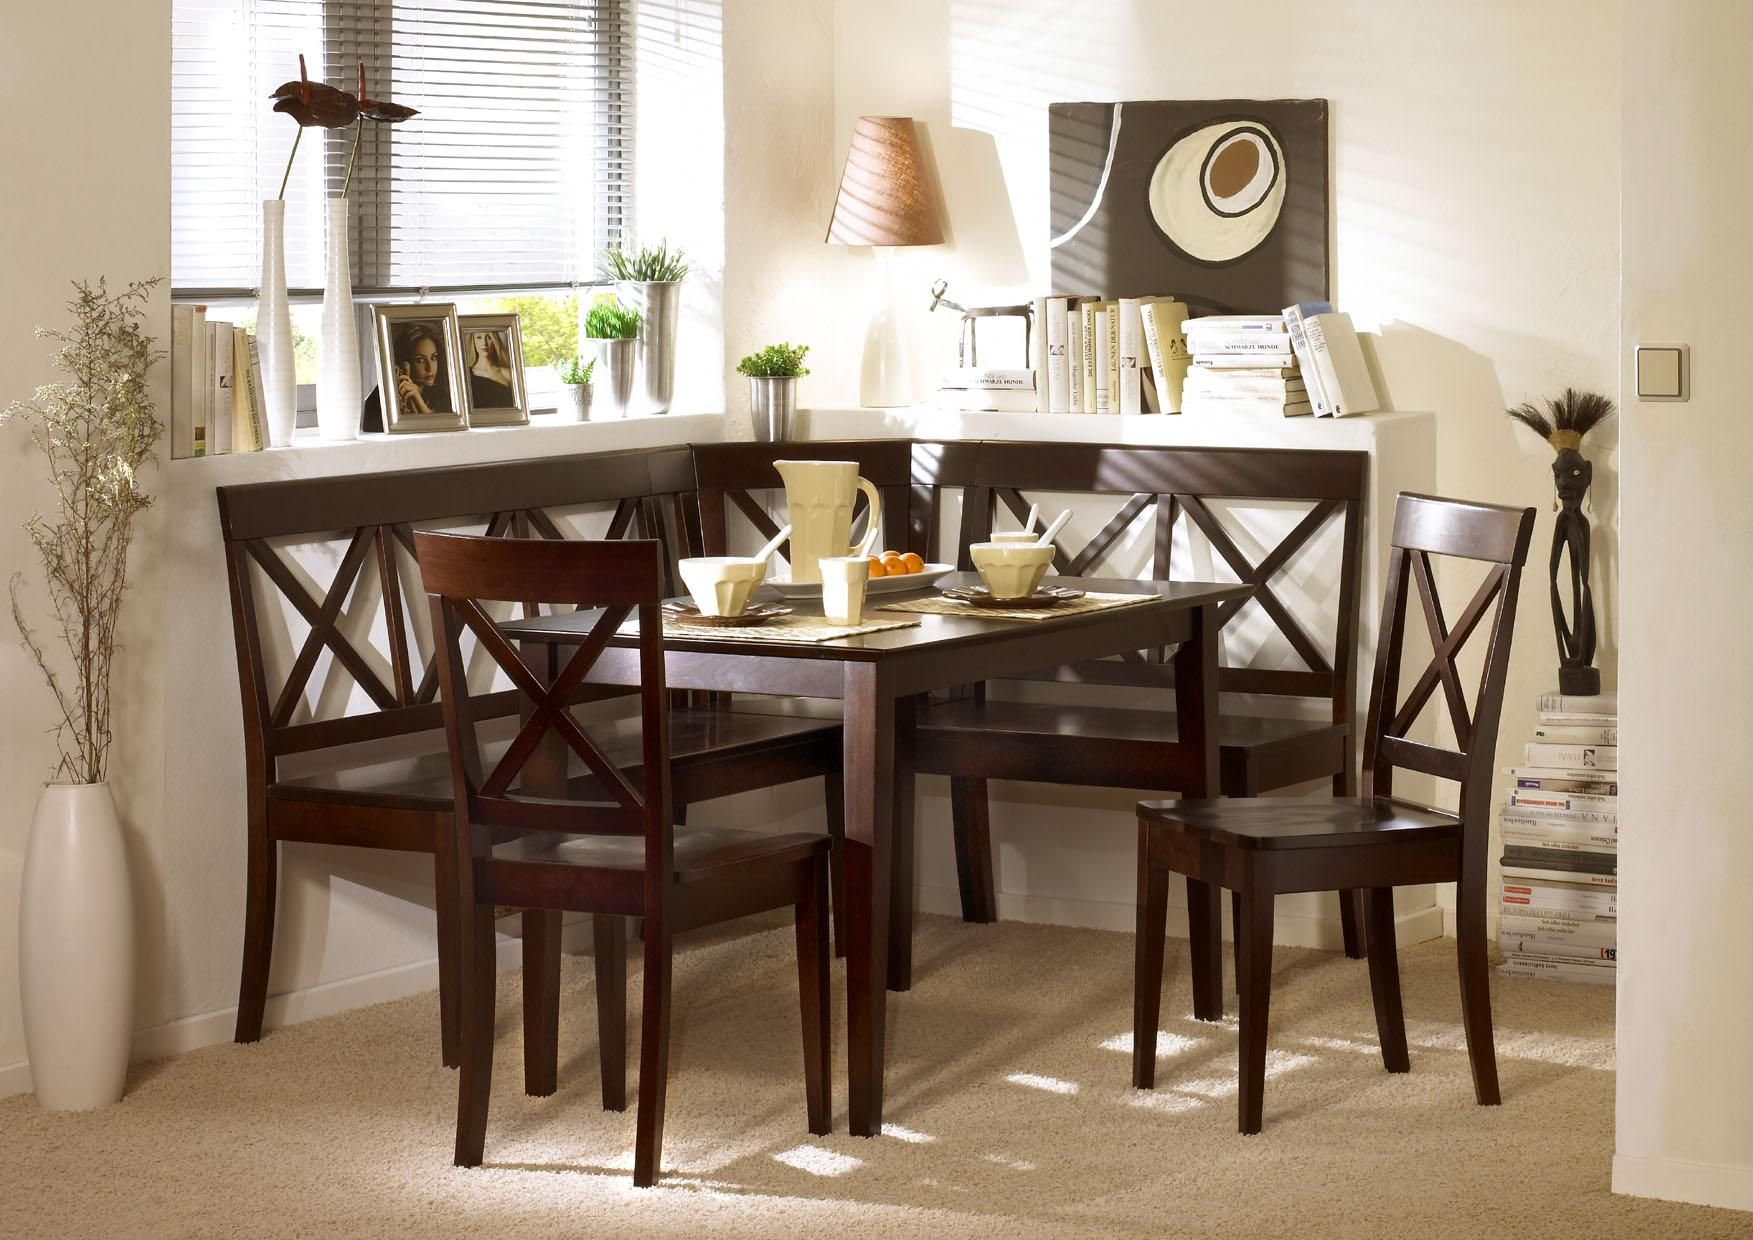 Furniture Interesting L Shaped Dark Wood Kitchen Nook Nice Dining Table Chairs Beige Area Rug White Window Blind Simple